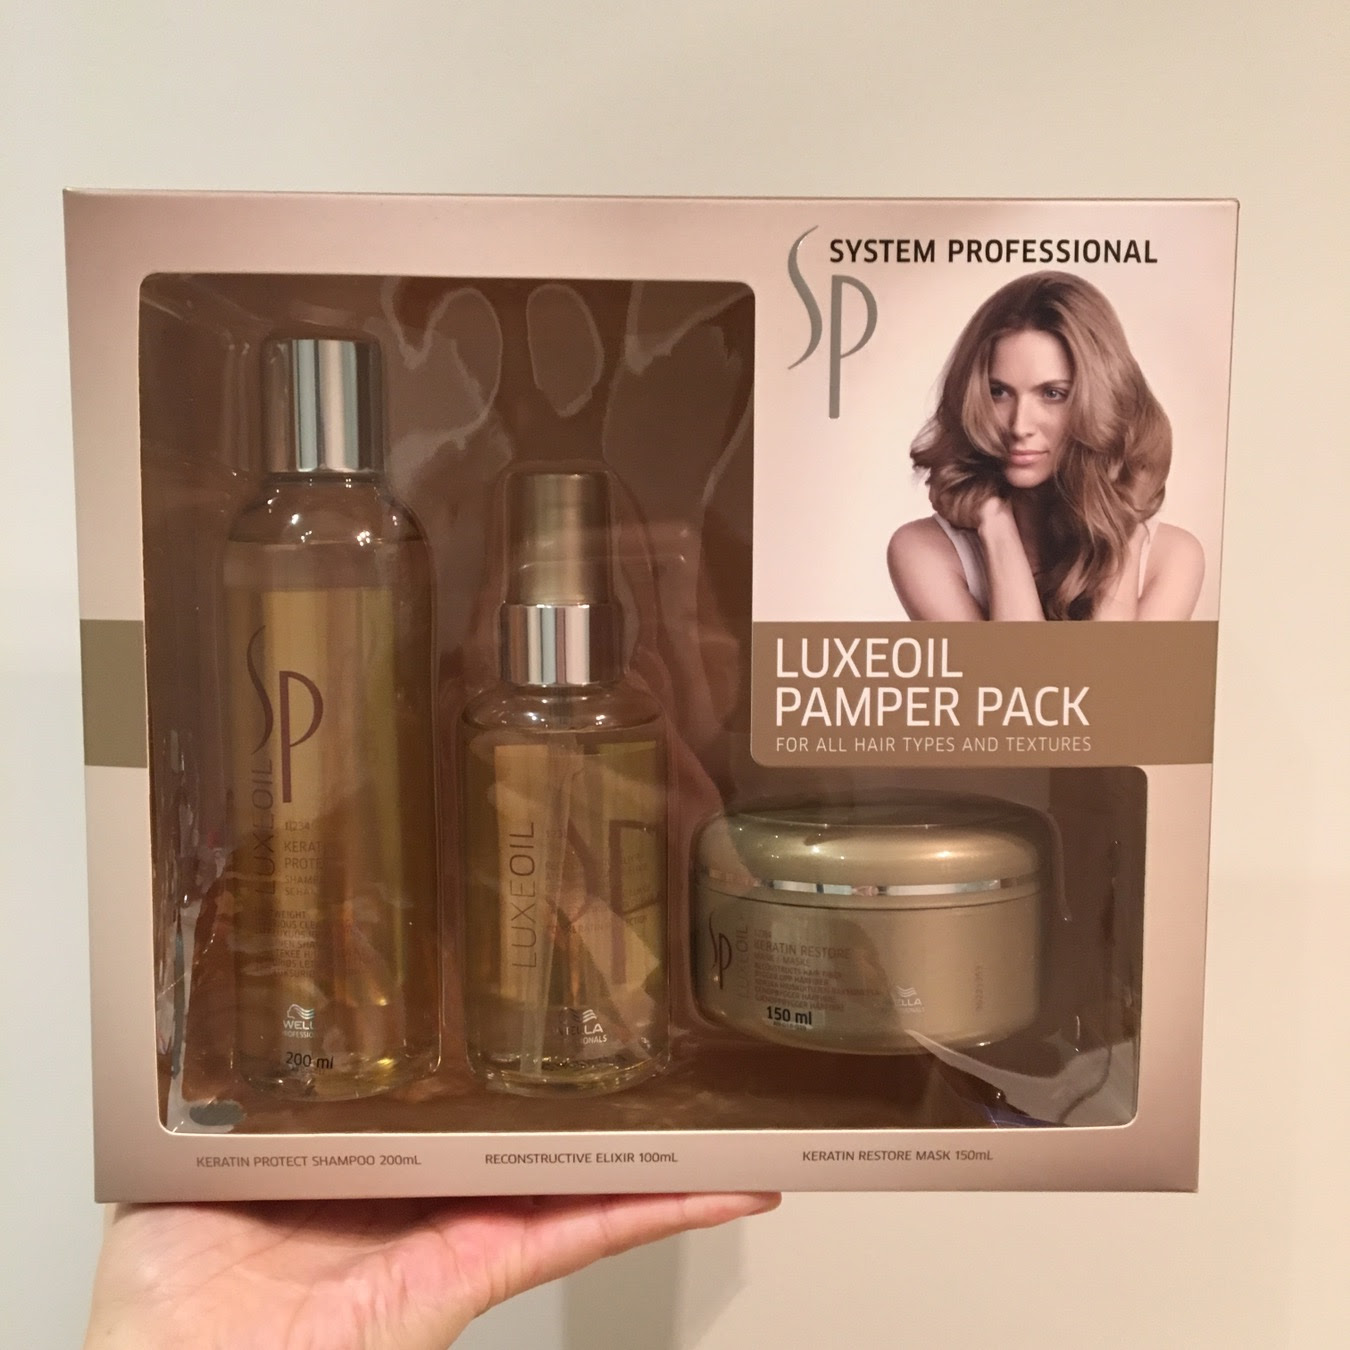 System Professional Luxeoil Pamper Pack  Bellyrubz Beauty